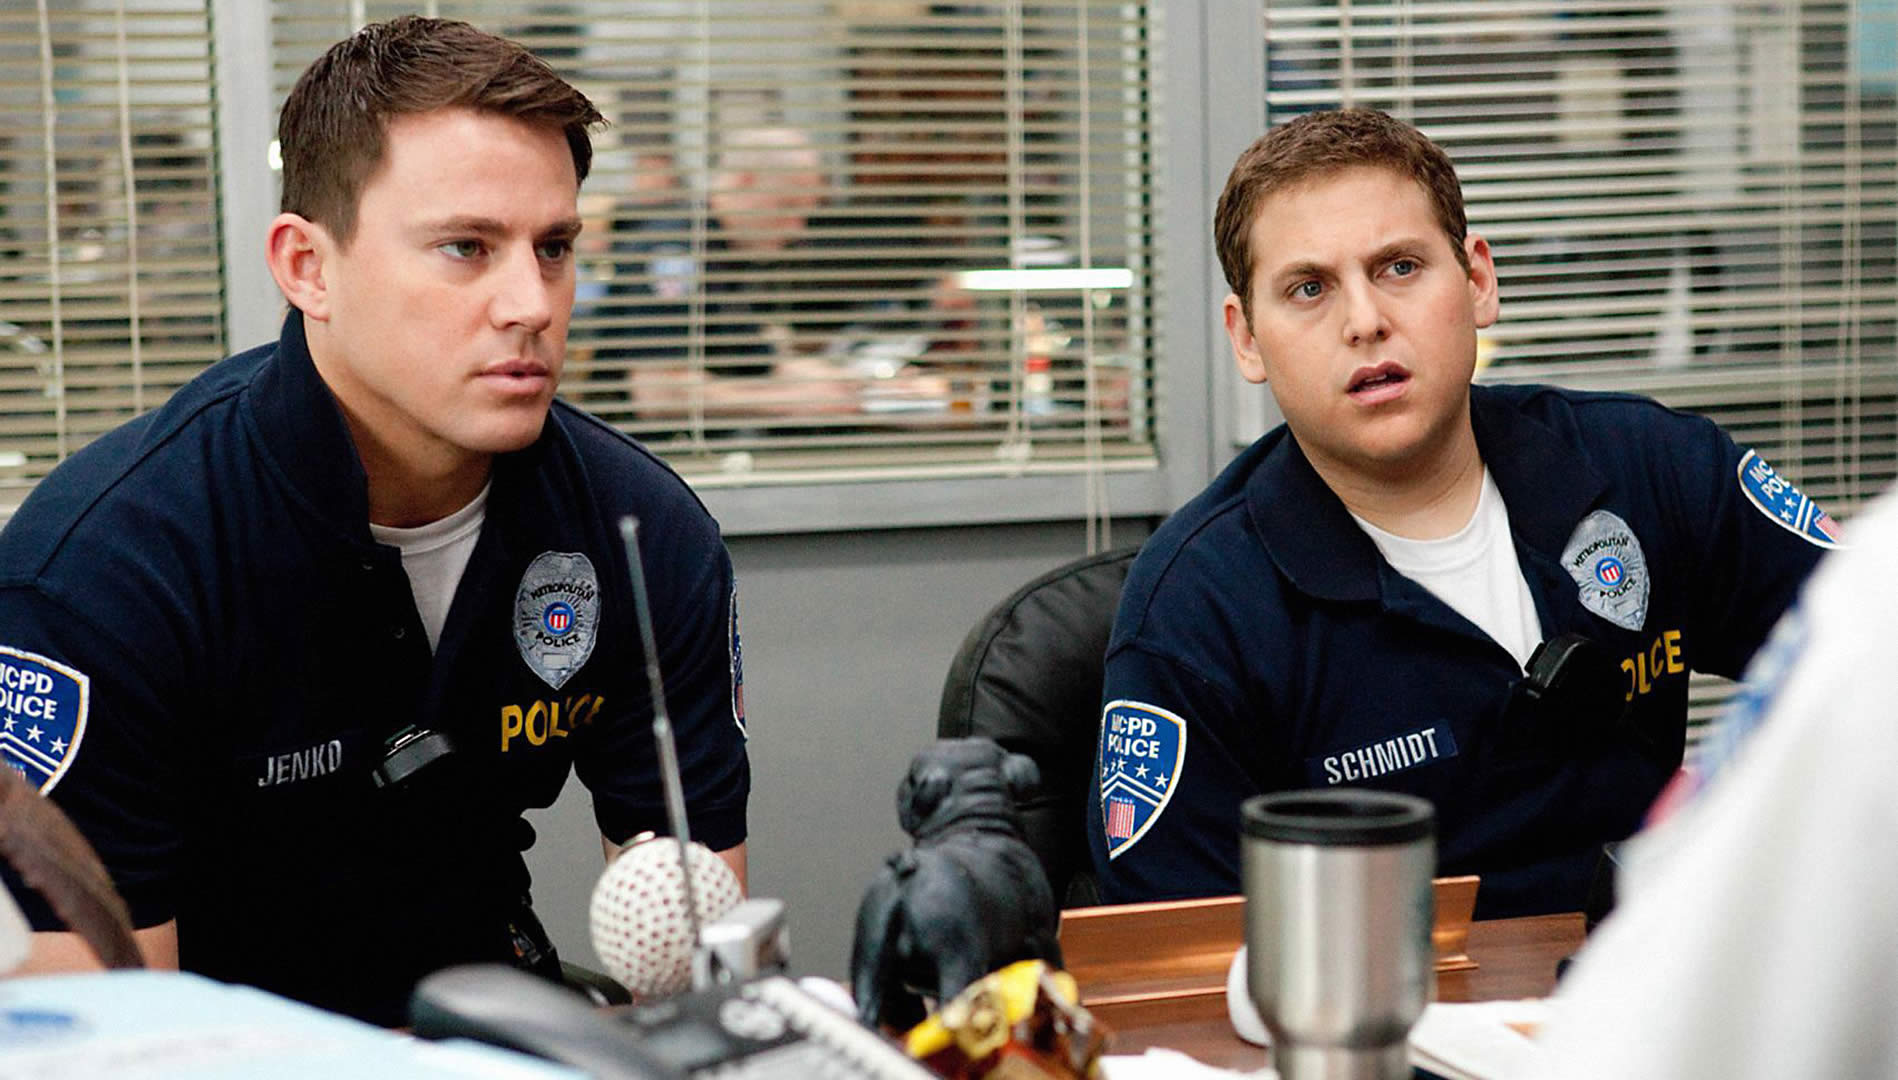 police officers in 22 jump street movie